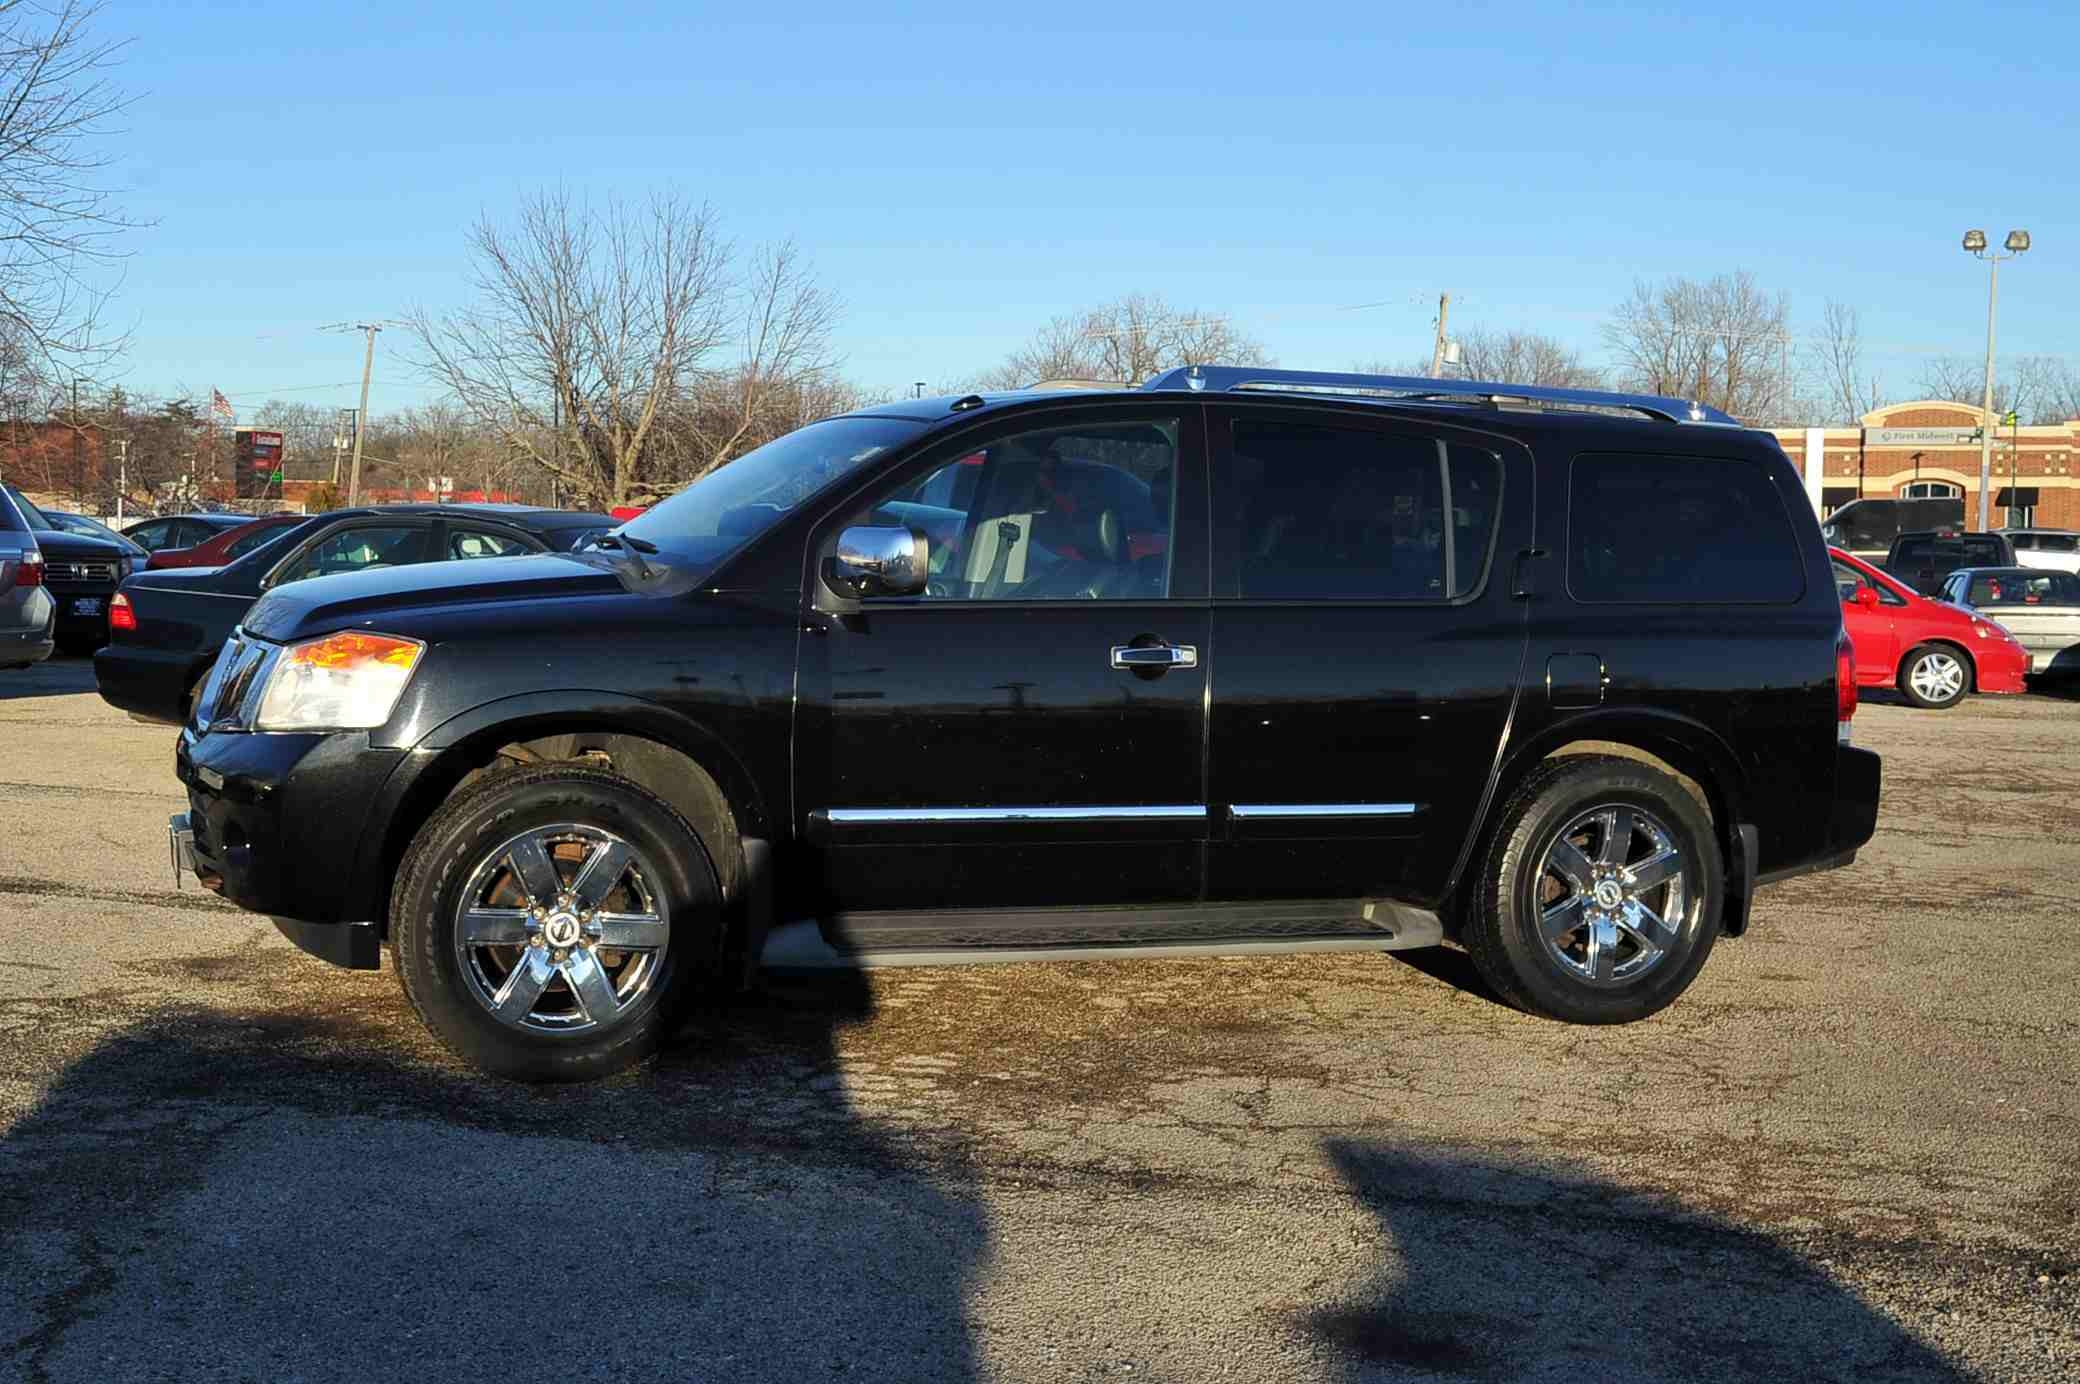 2010 Nissan Armada Black Platinum 4x4 SUV Sale Antioch Zion Waukegan Lake County Illinois